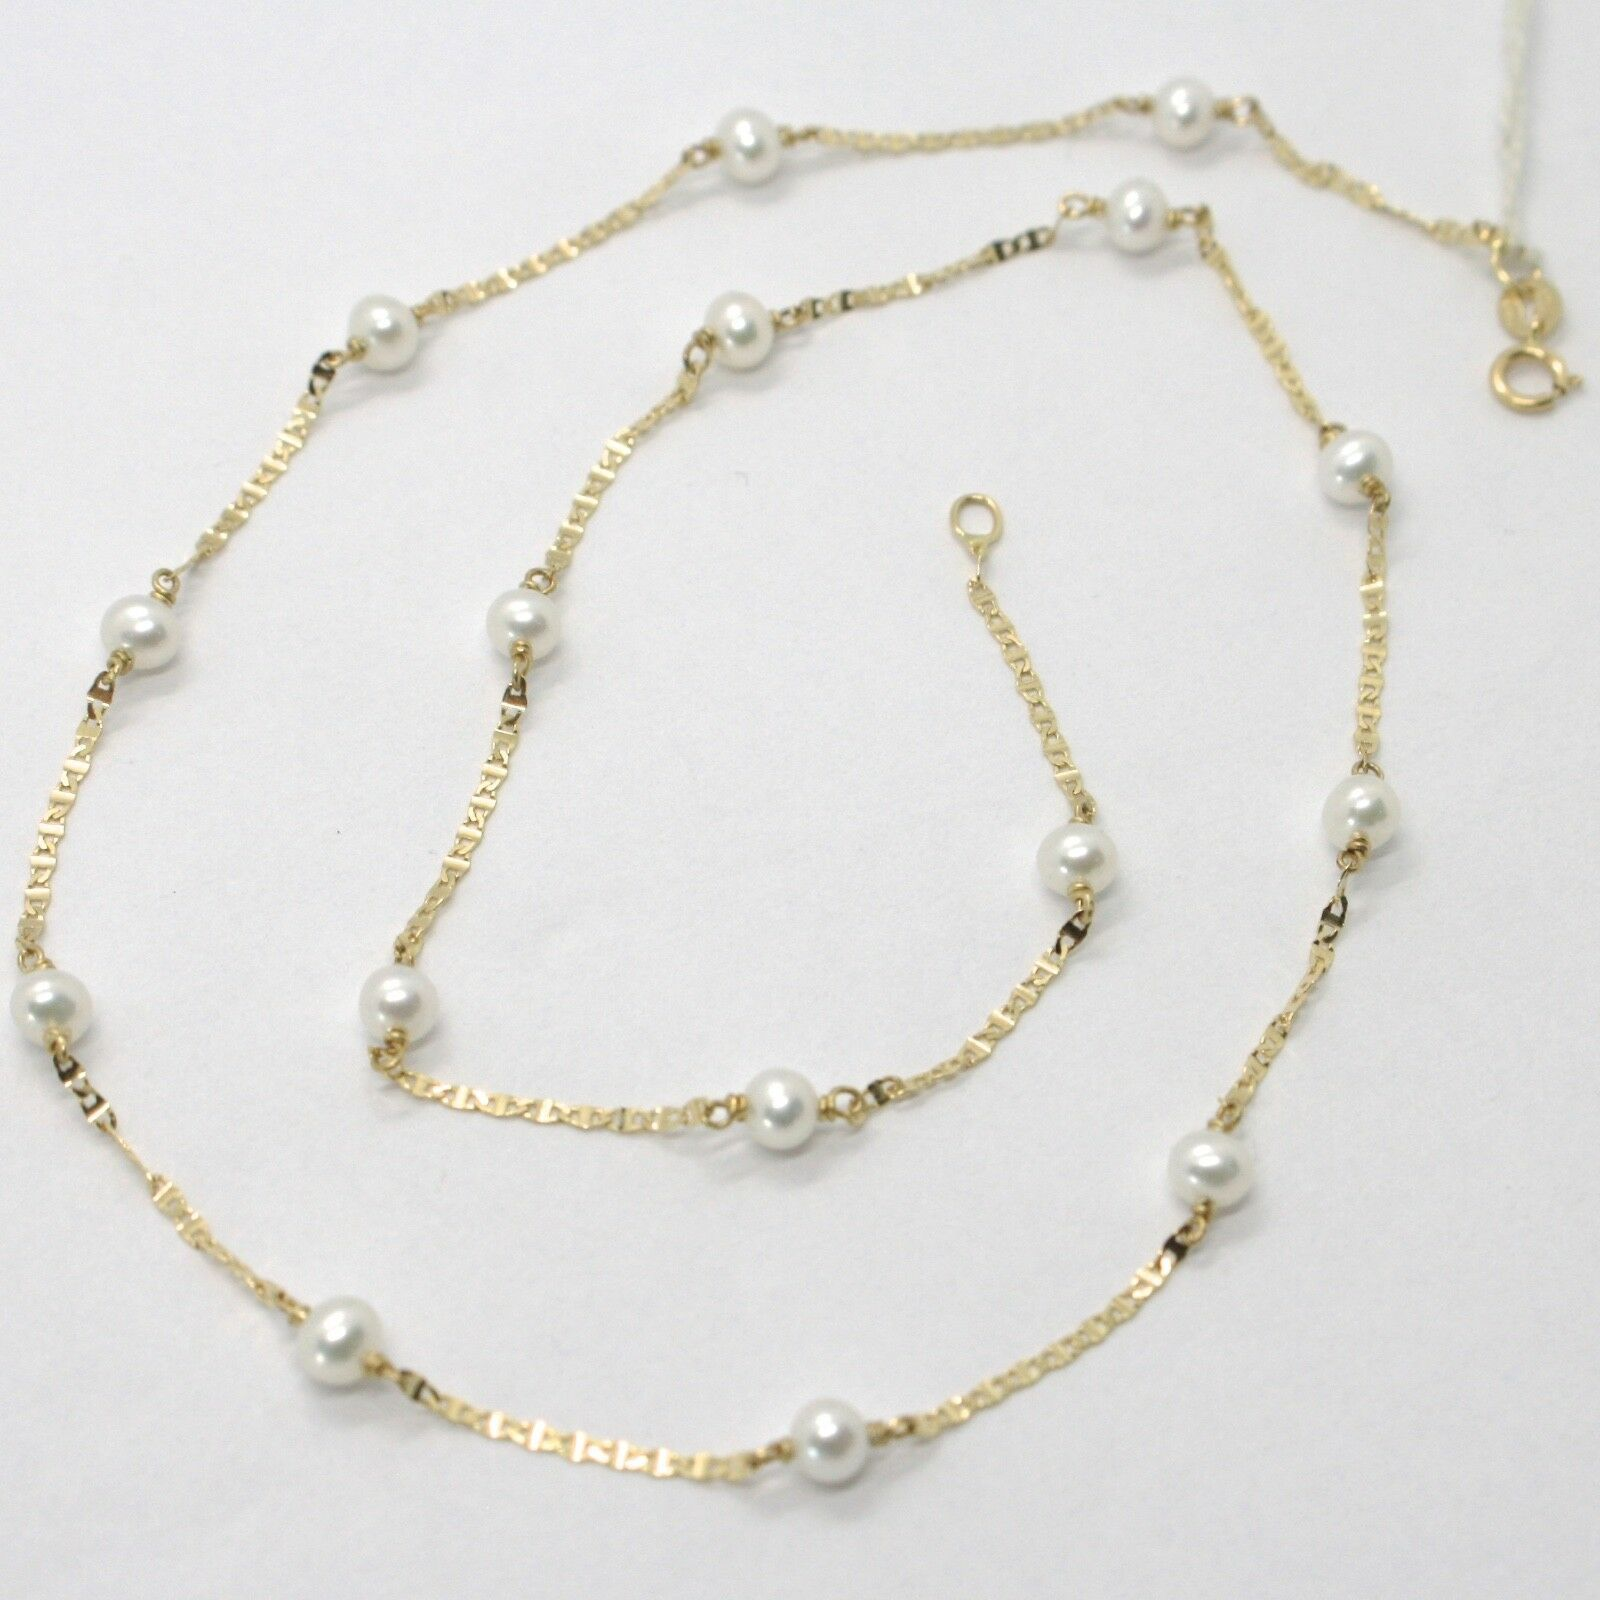 18K YELLOW GOLD NECKLACE, OVAL FLAT CHAIN ALTERNATE WITH WHITE MINI PEARLS 4 MM